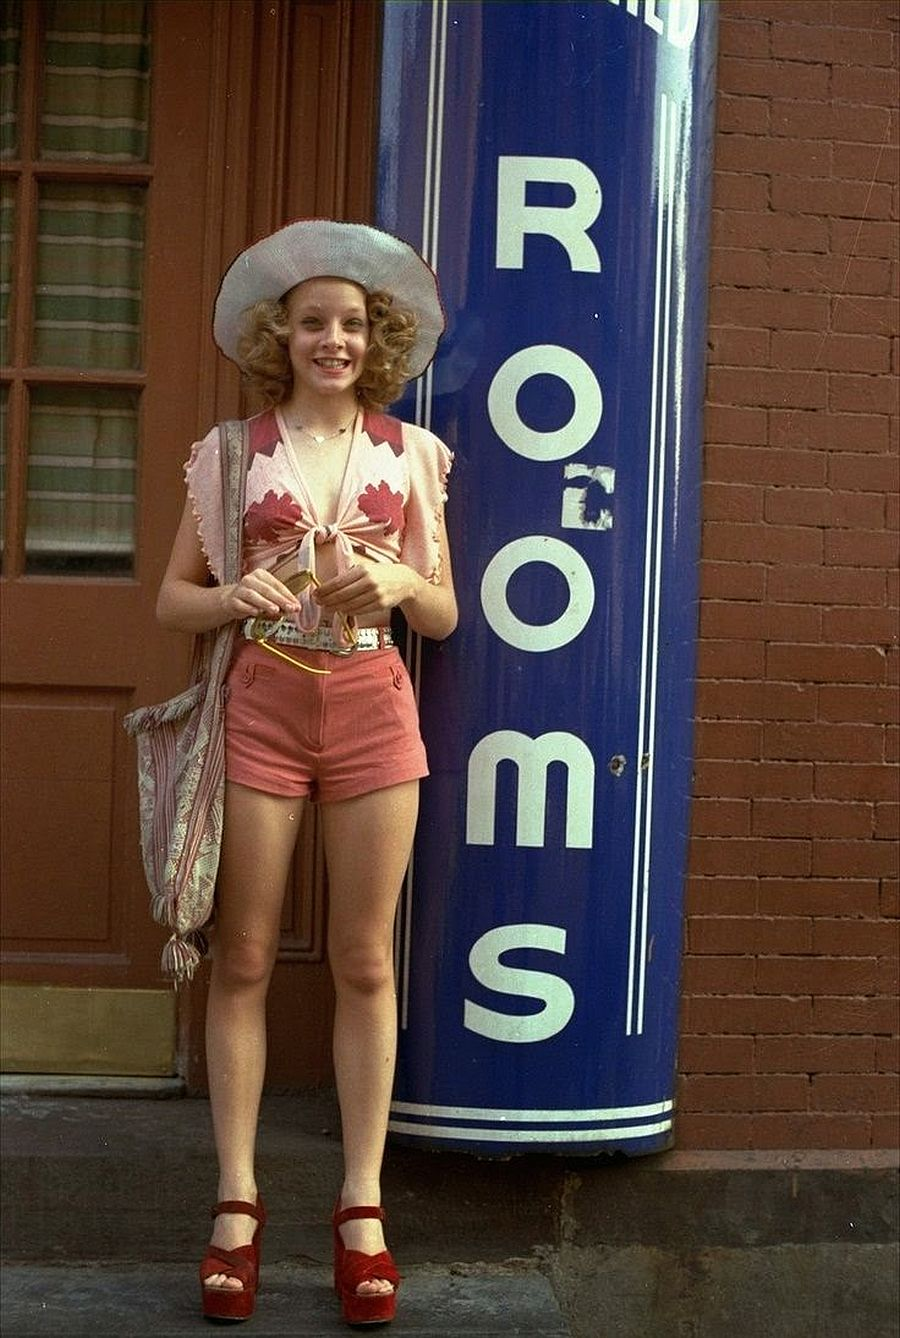 behind-the-scenes-jodie-foster-on-the-set-of-taxi-driver-1976-06